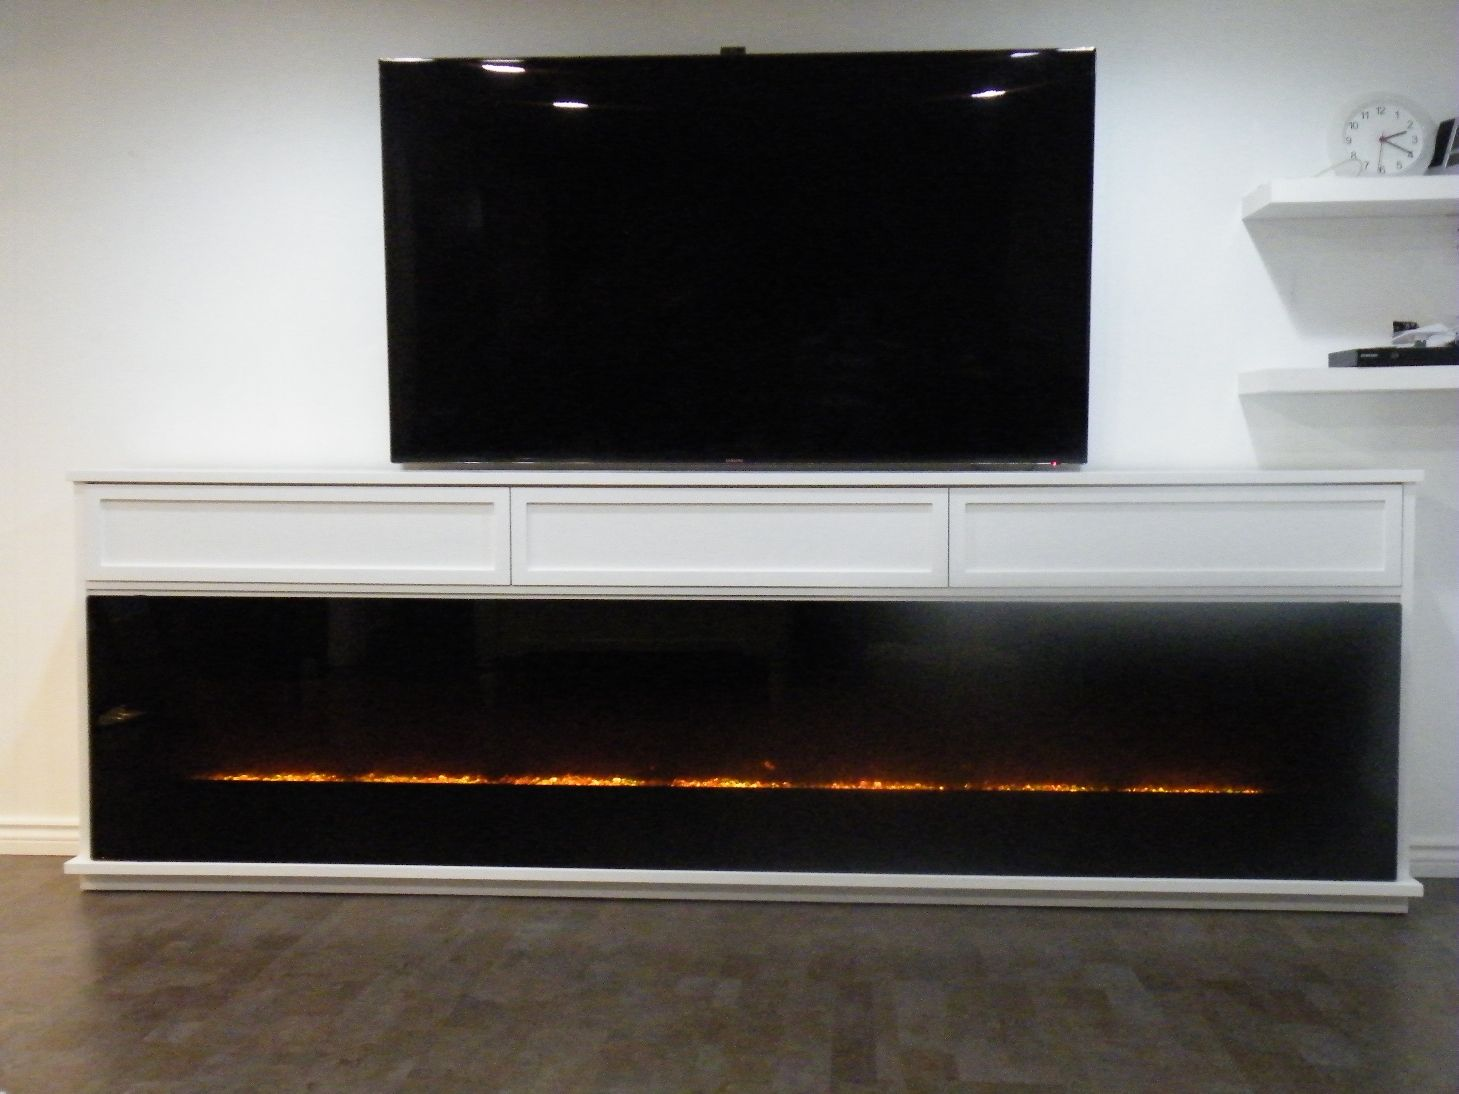 Custom Media Cabinet 119 Wide Featuring 115 Amantii Electric Fireplace Three Doors Across Top For Component Storage